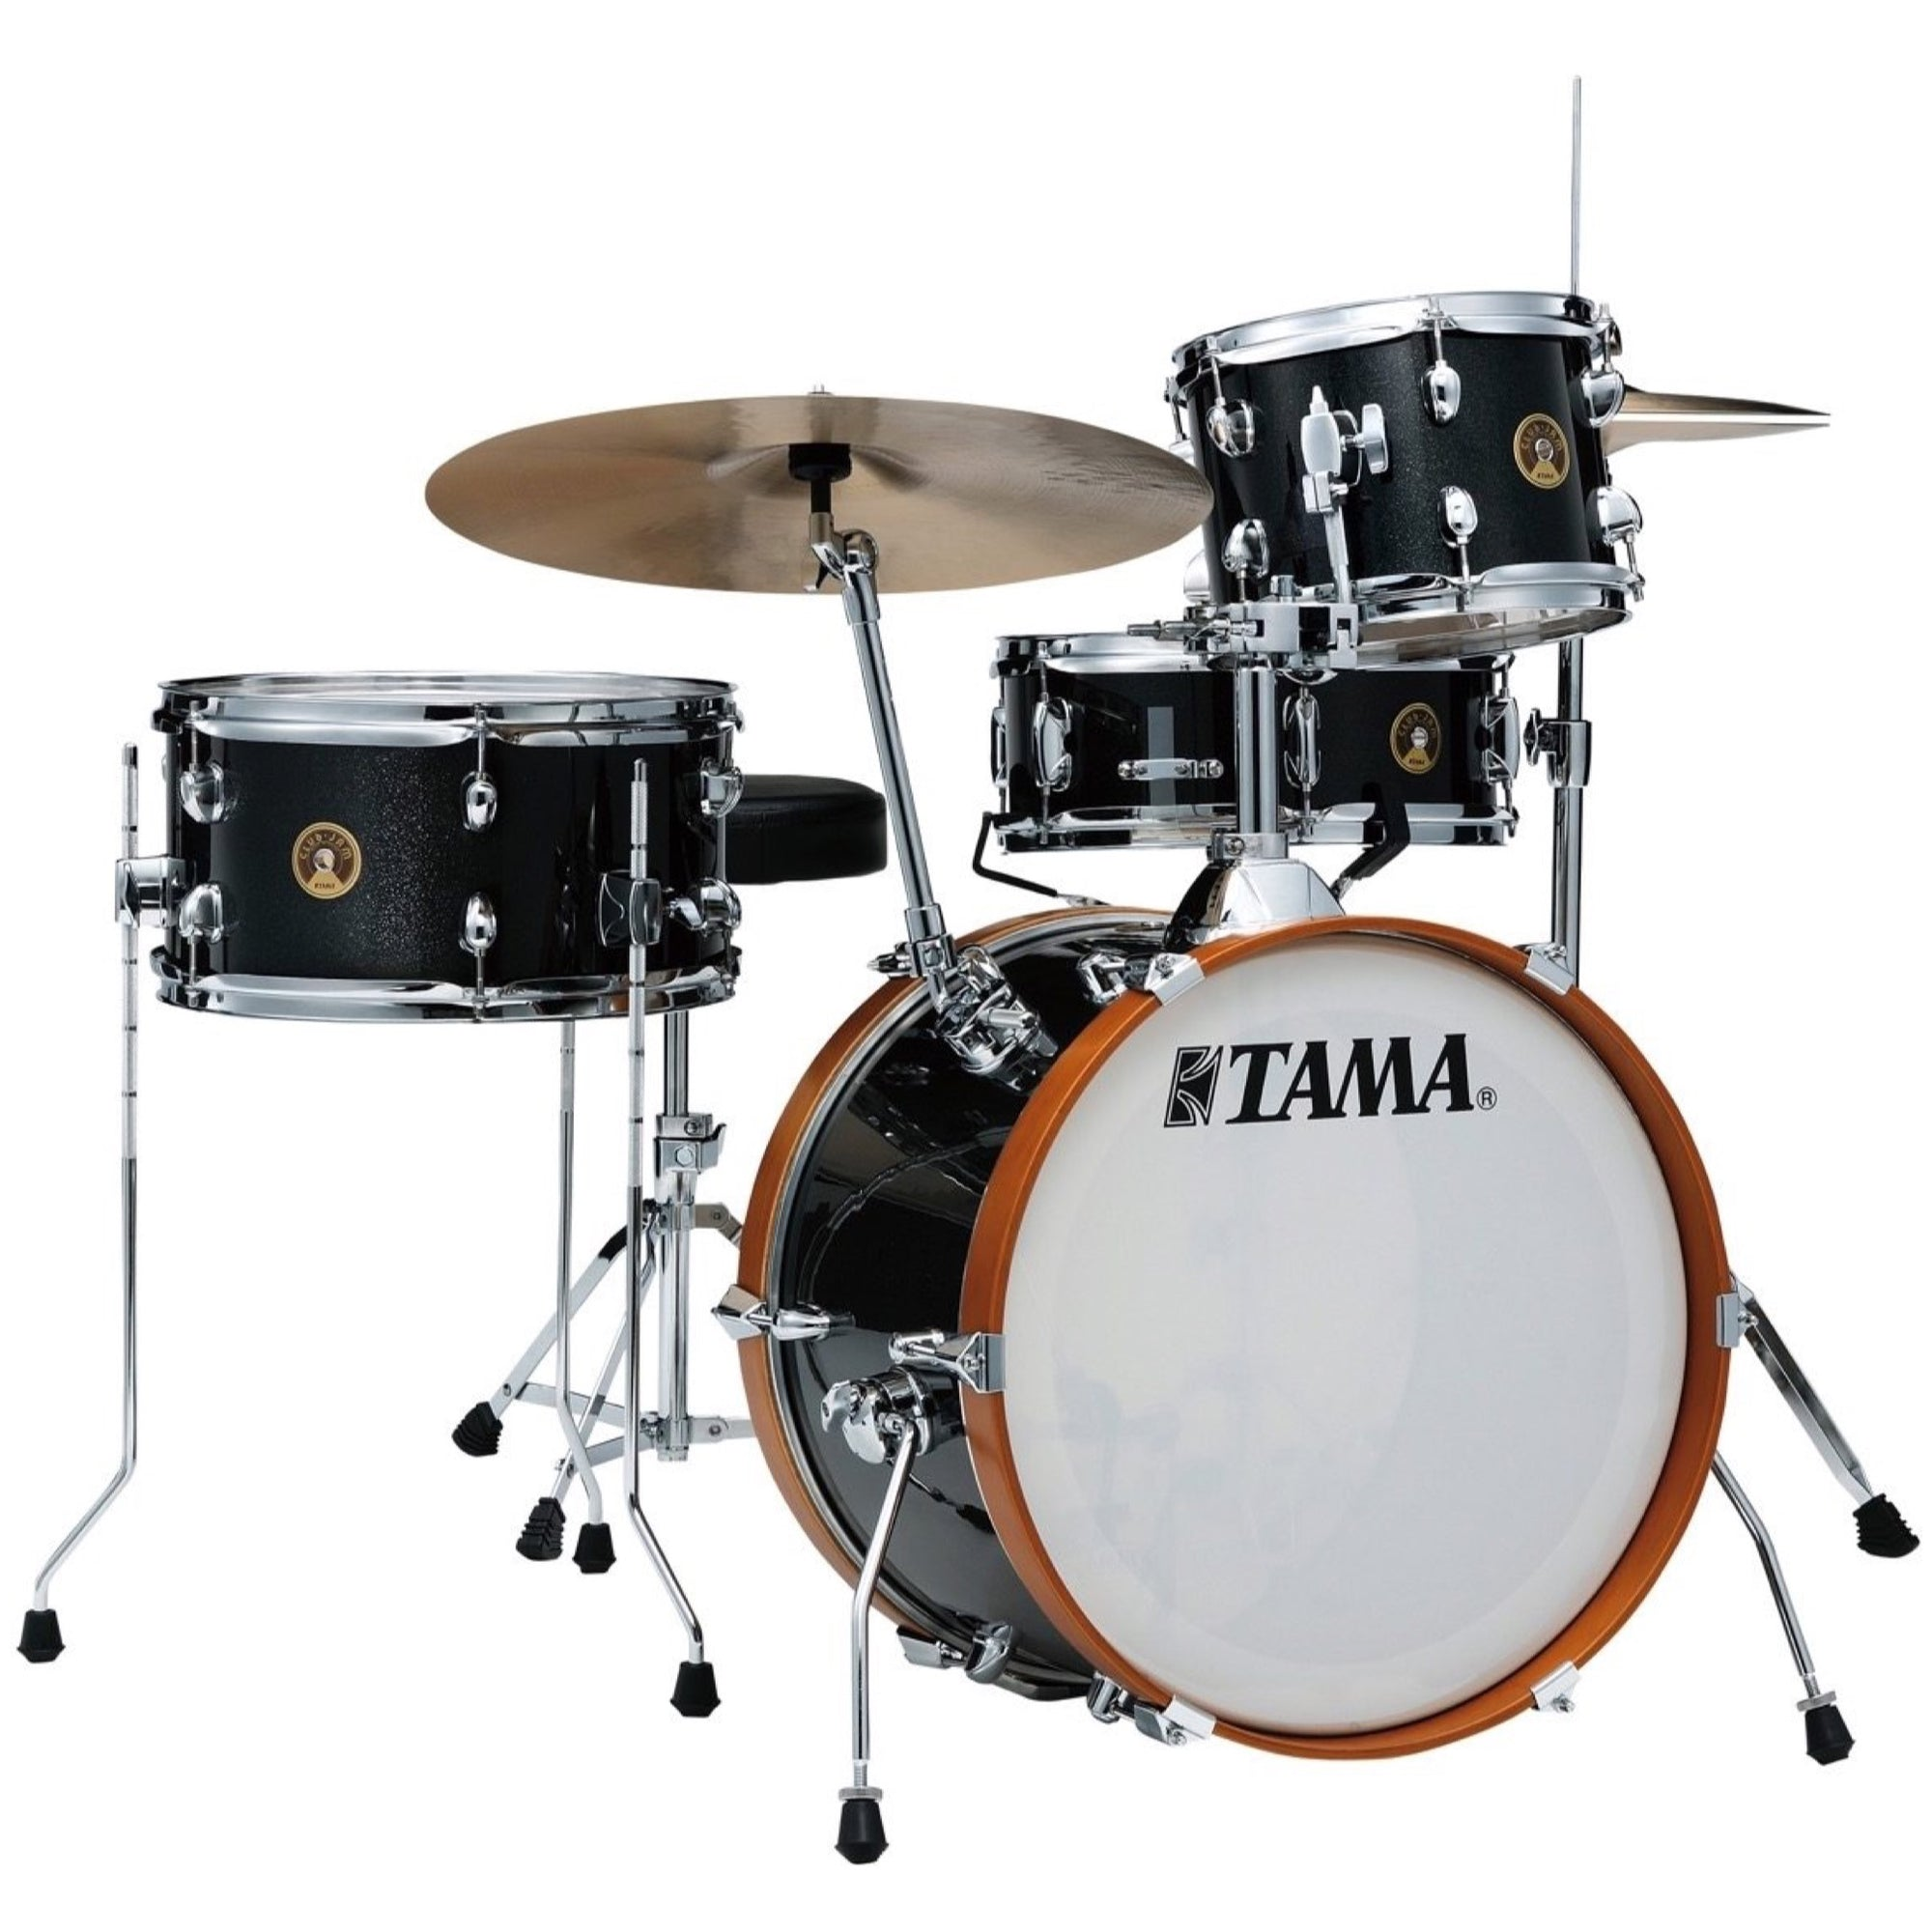 Tama Club Jam Drum Shell Kit, 4-Piece, Charcoal Mist